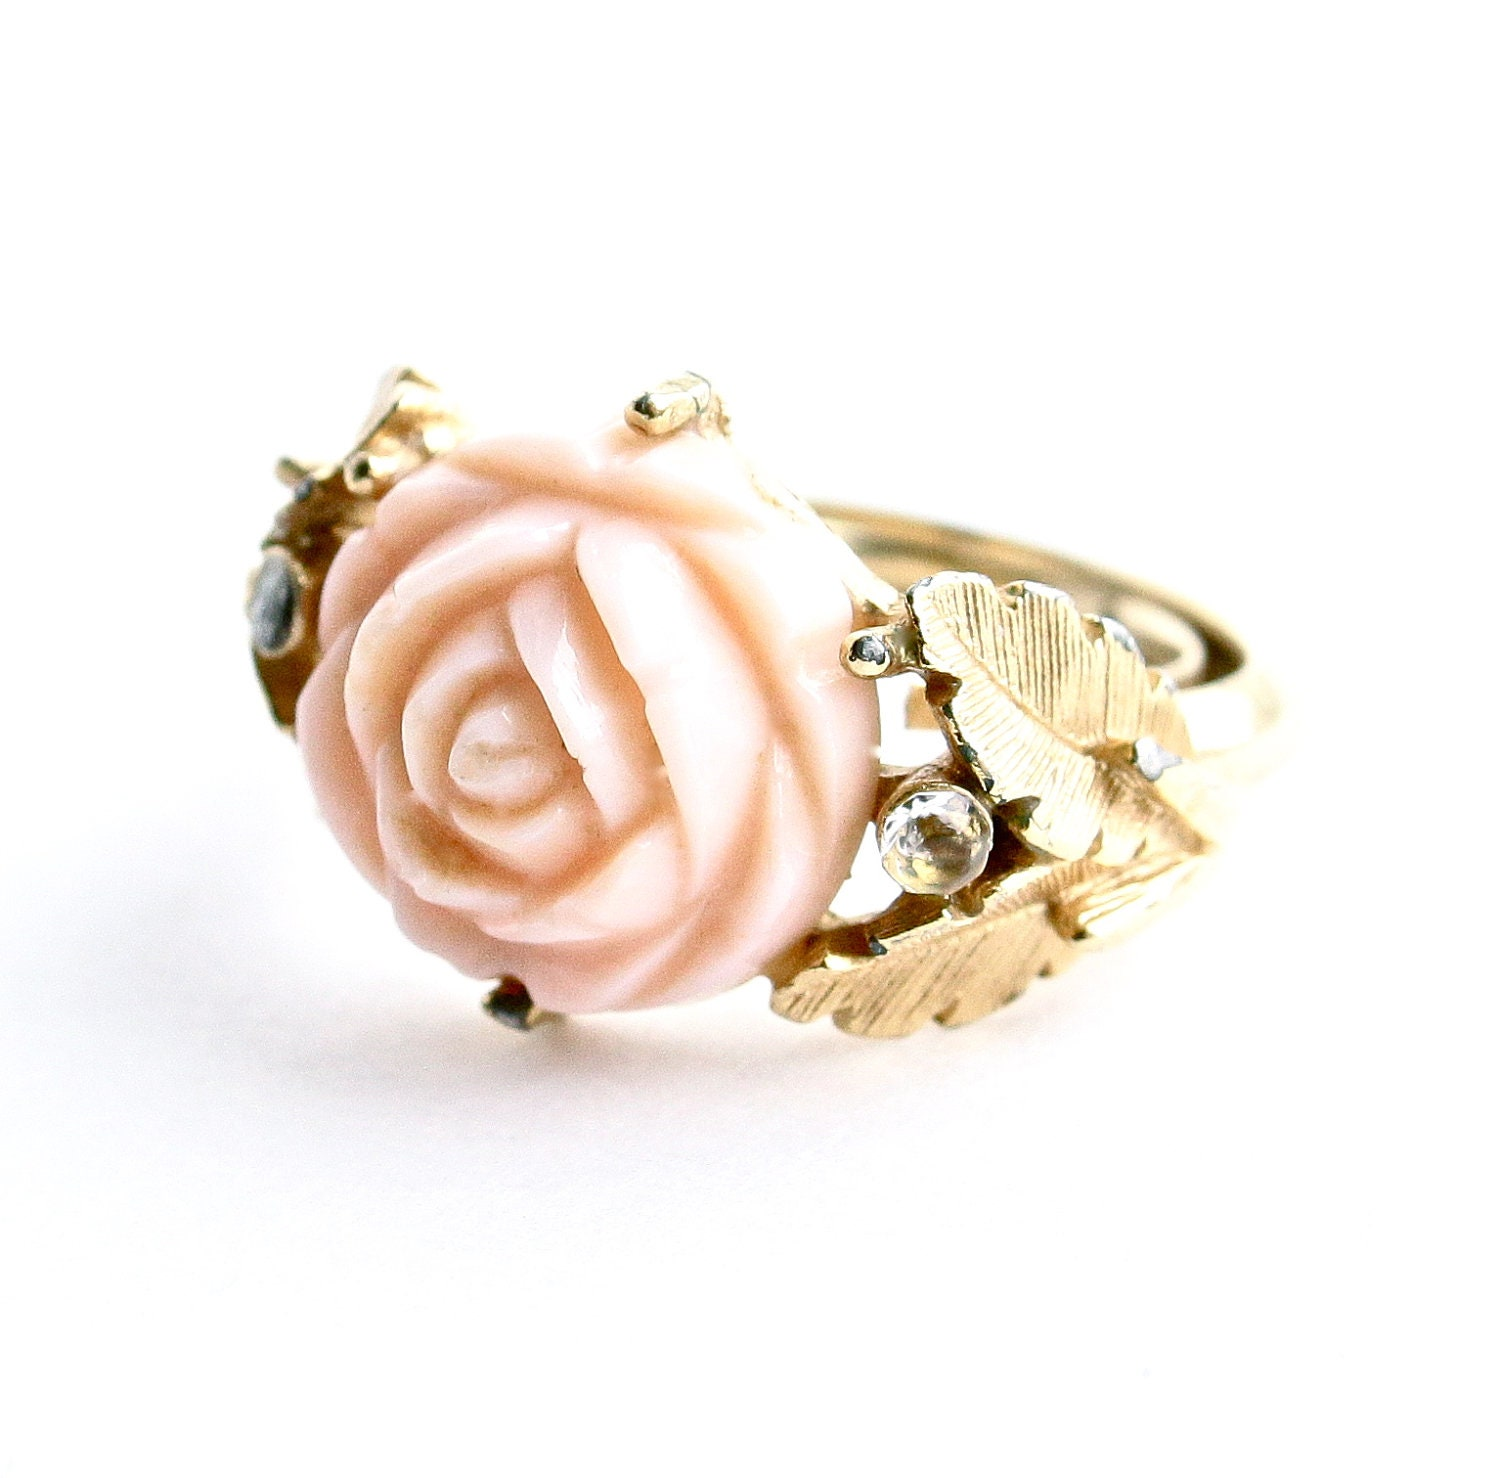 Vintage Rose Ring Gold Tone Signed Avon 1970s Romantic